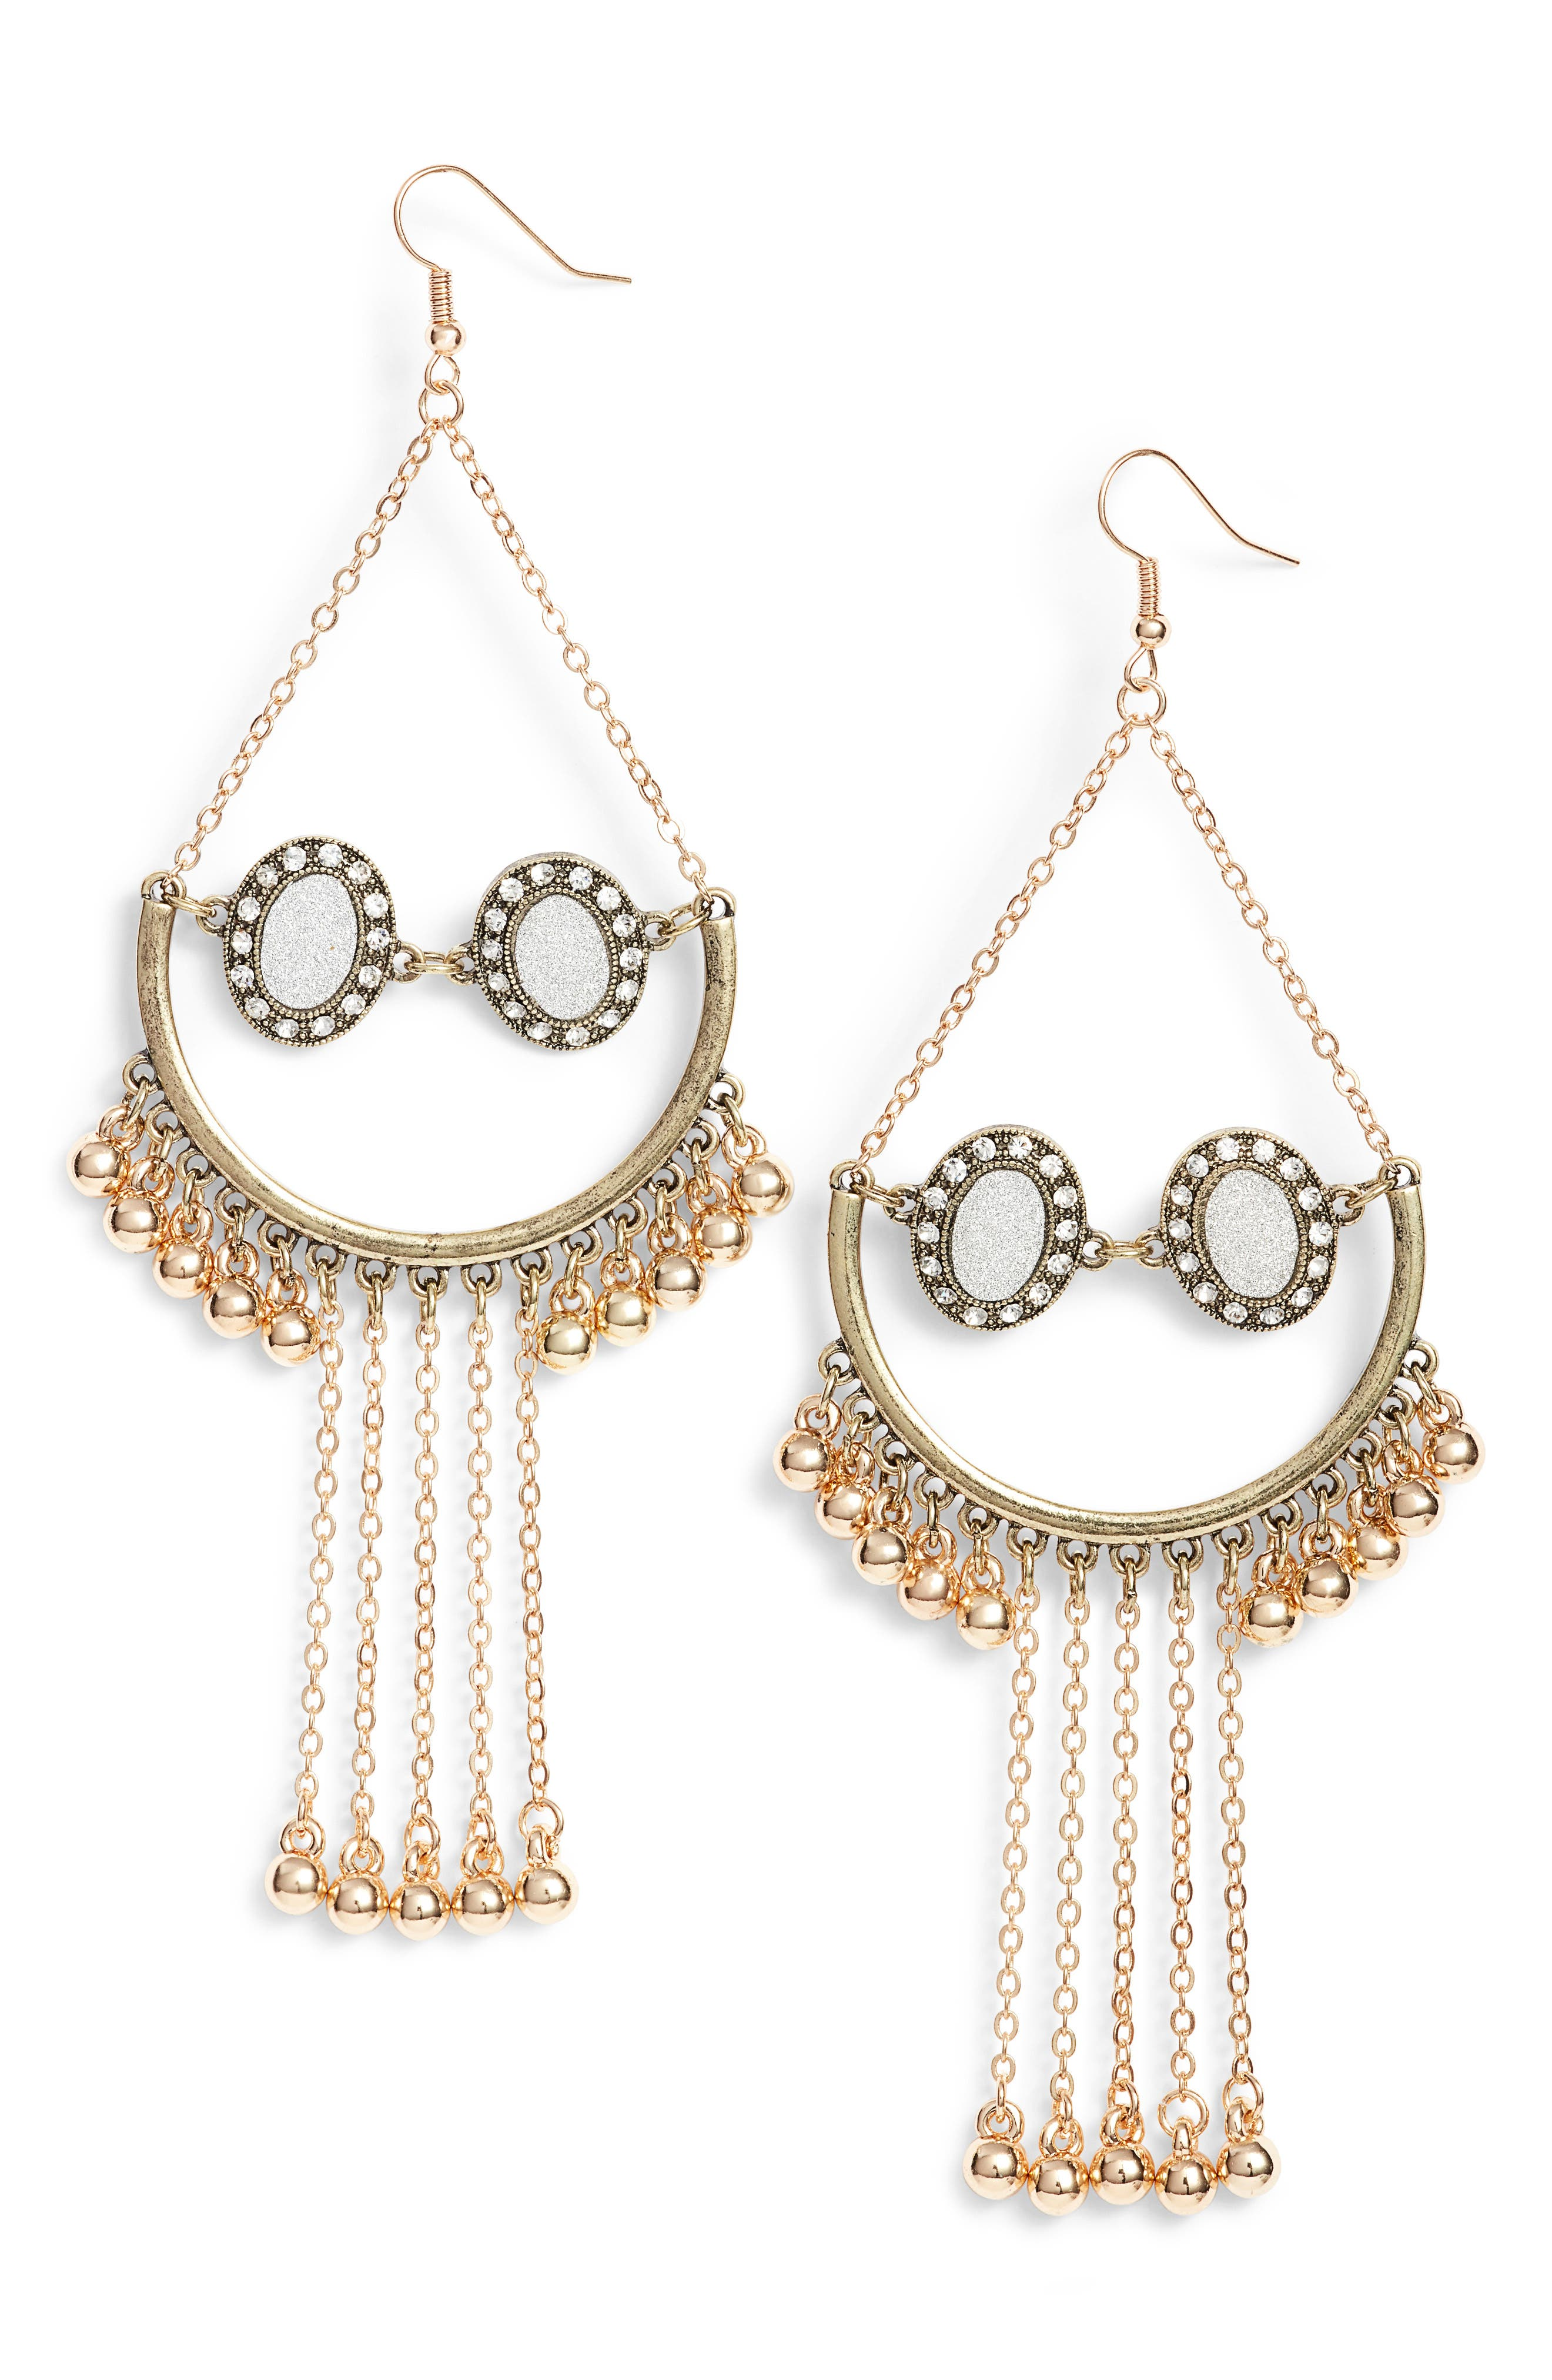 Tassel Statement Earrings,                         Main,                         color, Gold/ Crystal